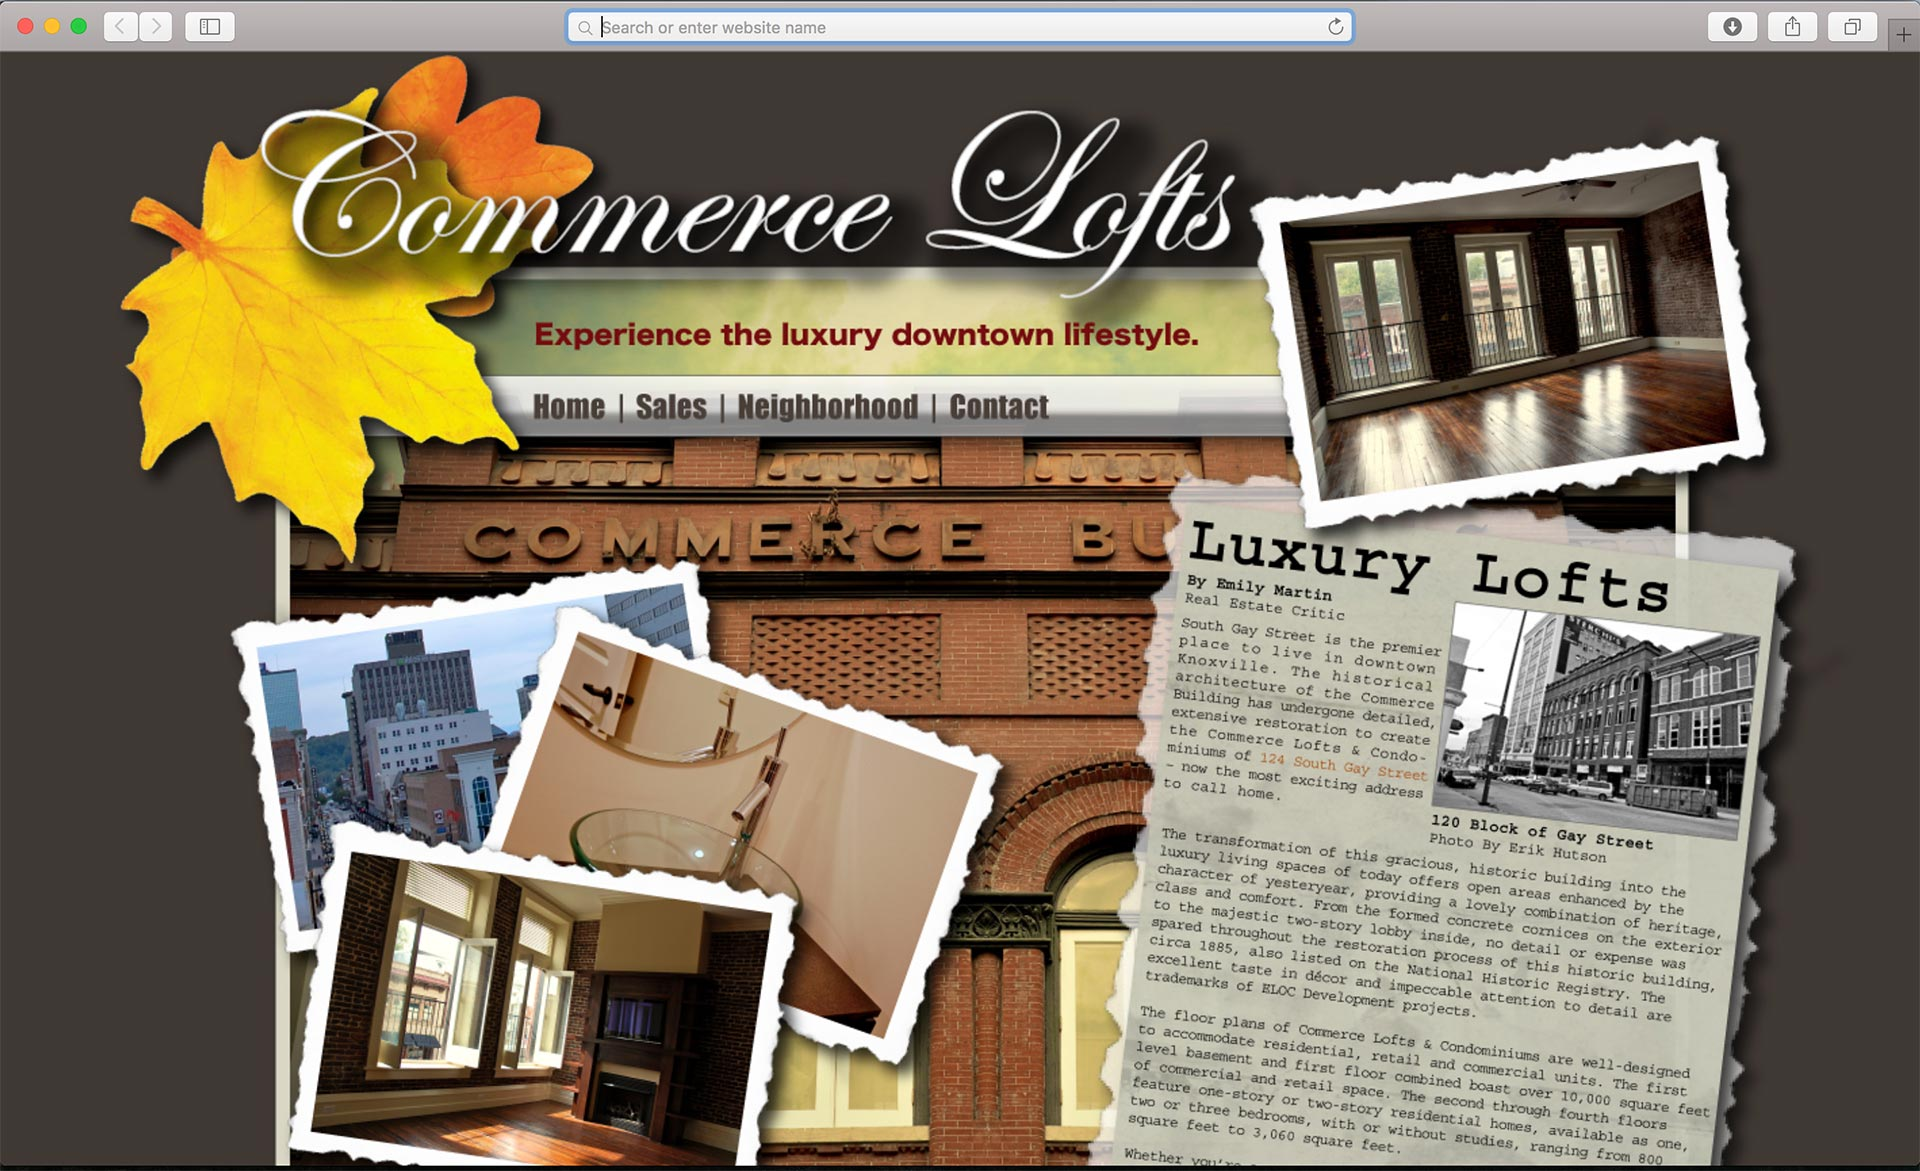 Commerce Lofts Homepage